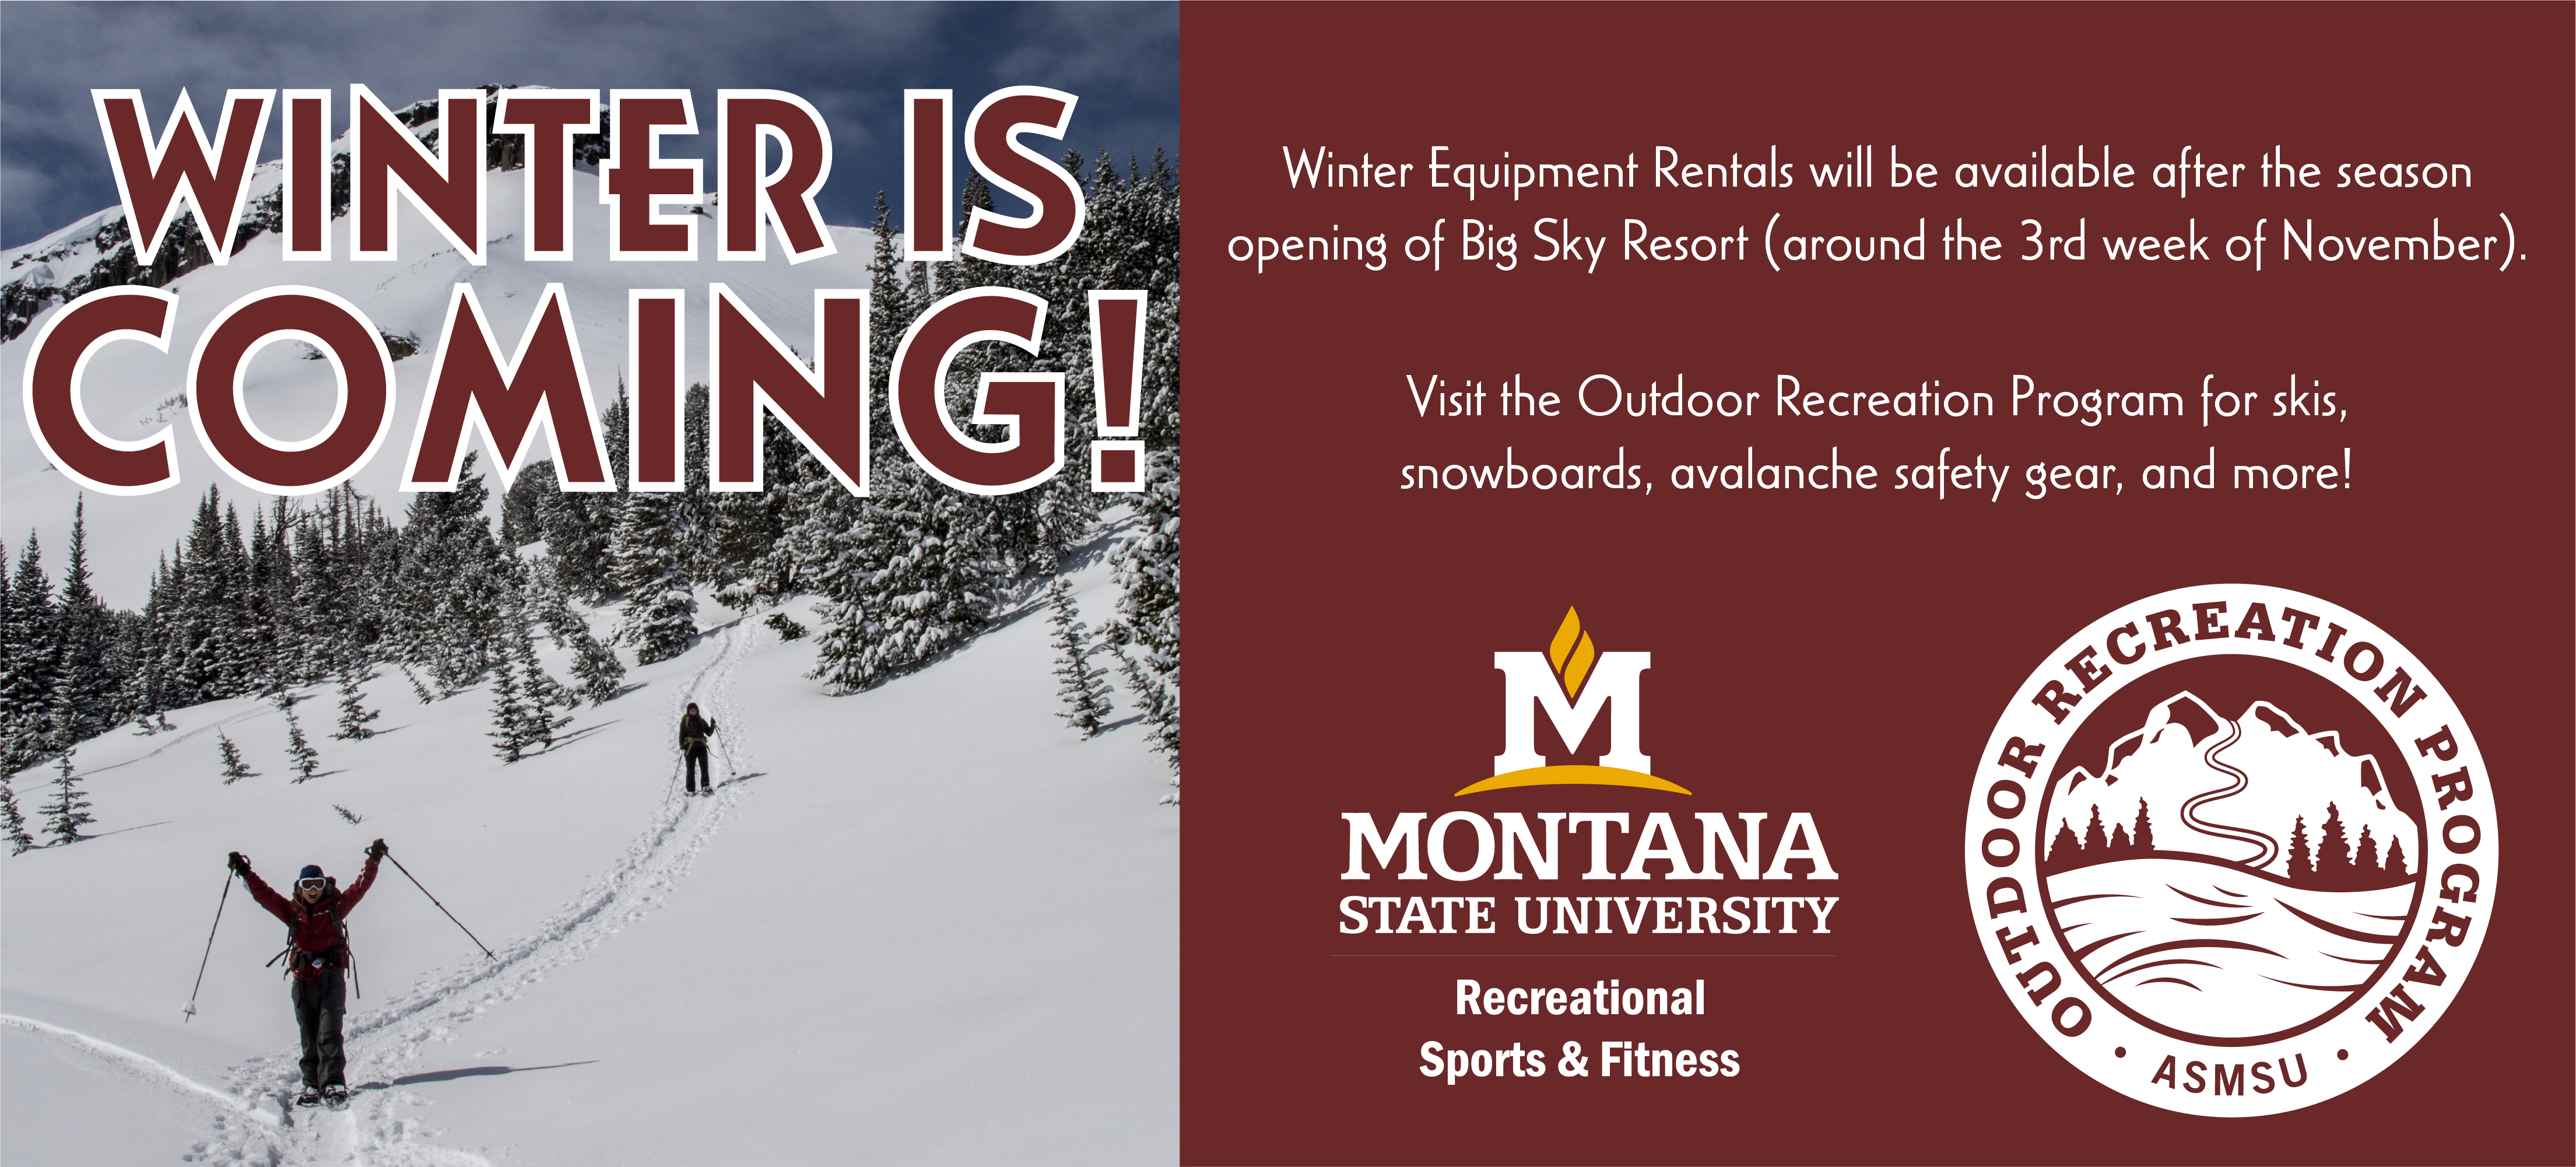 Winter equipment rentals will be available after the season opening of Big Sky Resort which is projected to be around November 28, 2019.